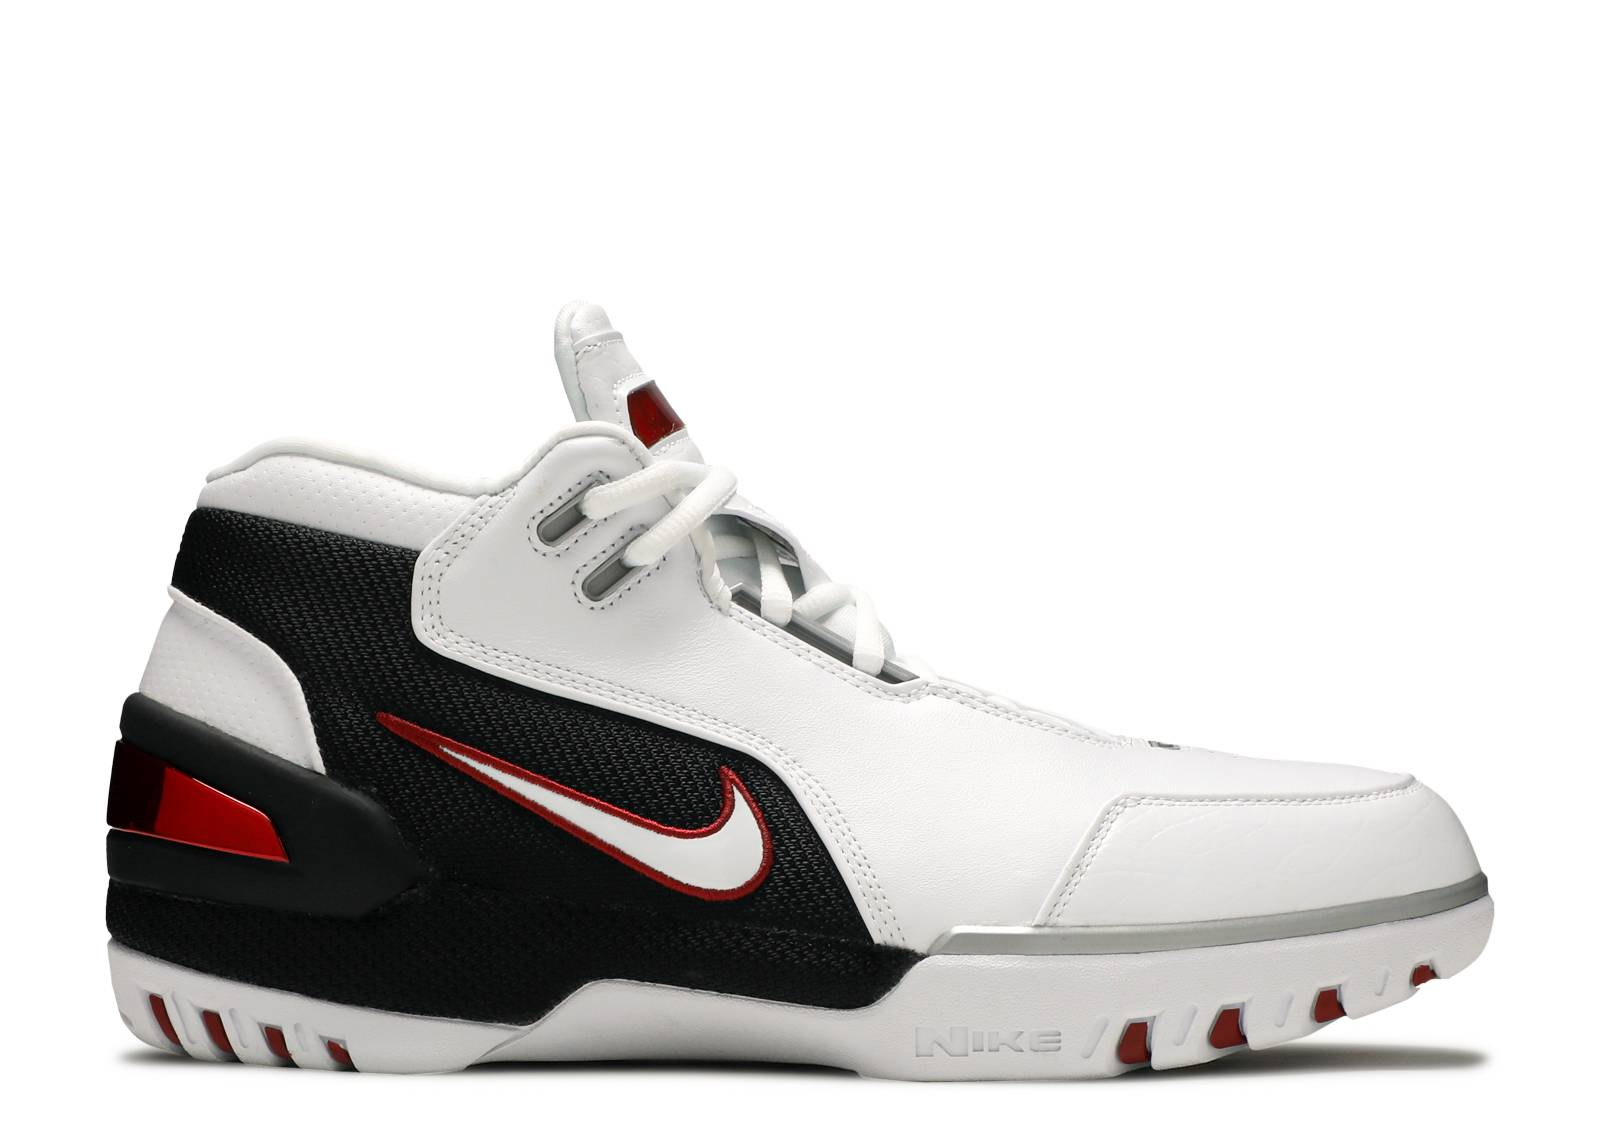 lebron james shoes white and red. nike lebron james shoes white and red